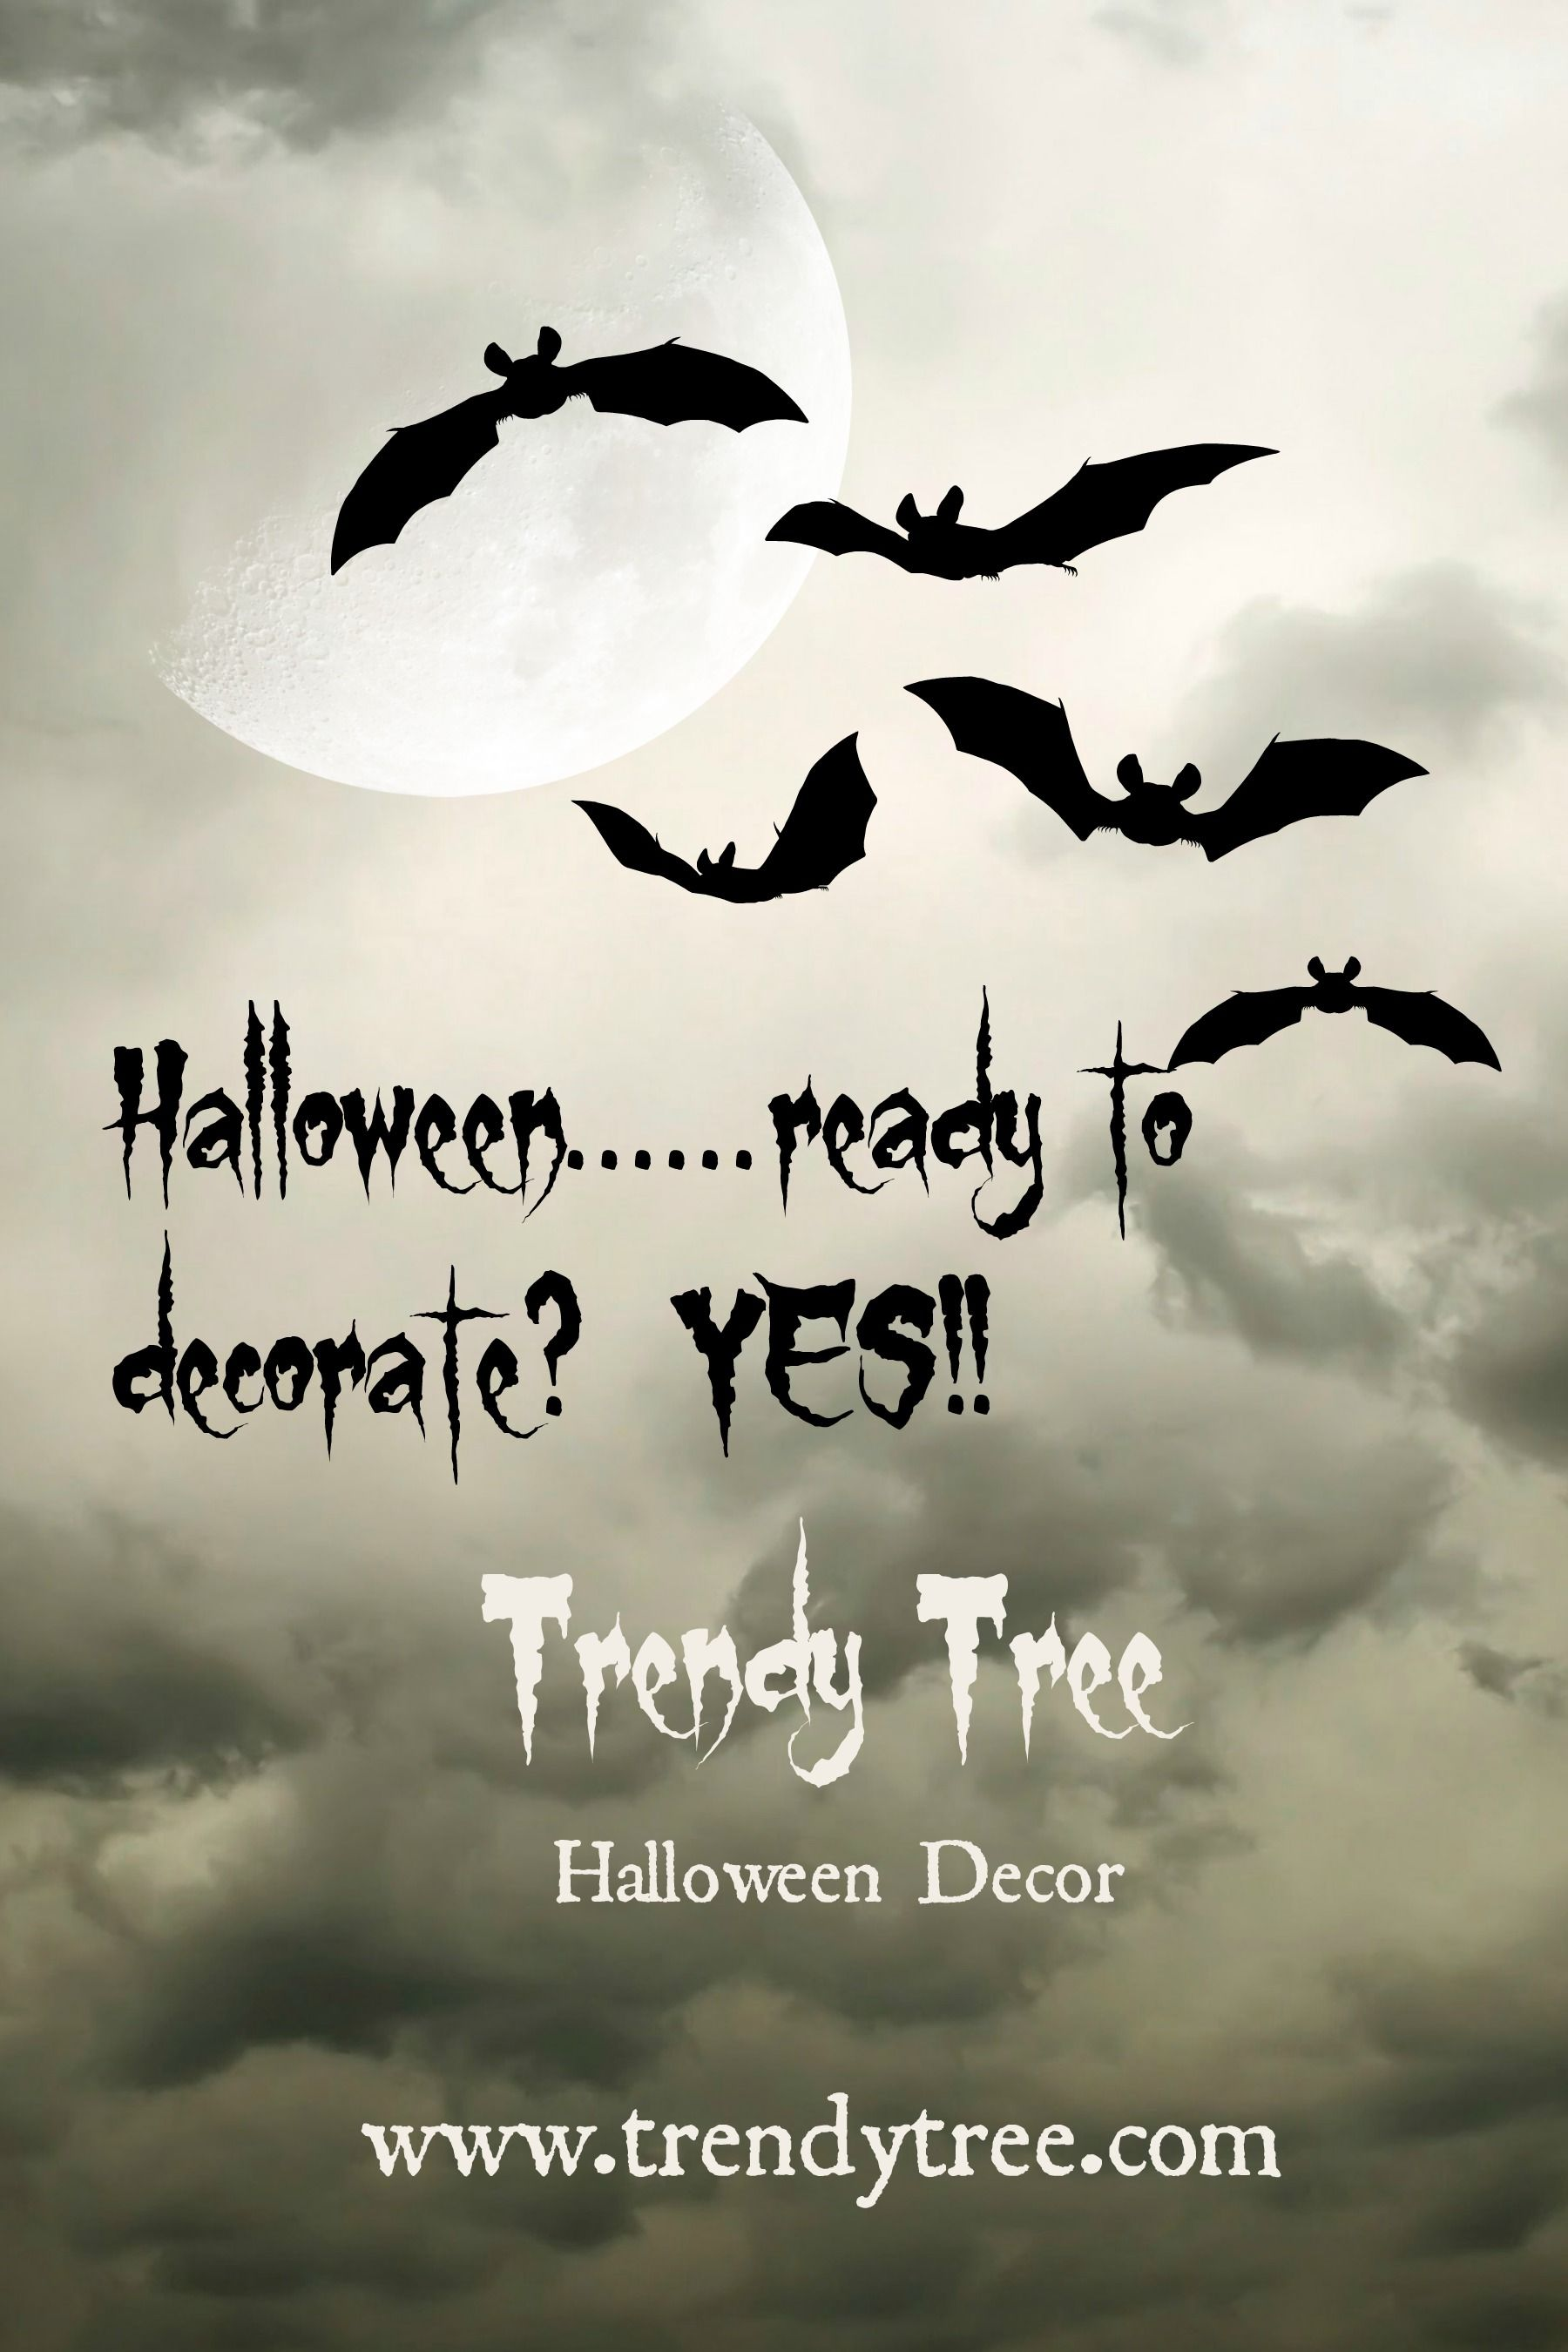 Visit Trendy Tree for Halloween Decor!   wwwtrendytree - Whimsical Halloween Decorations